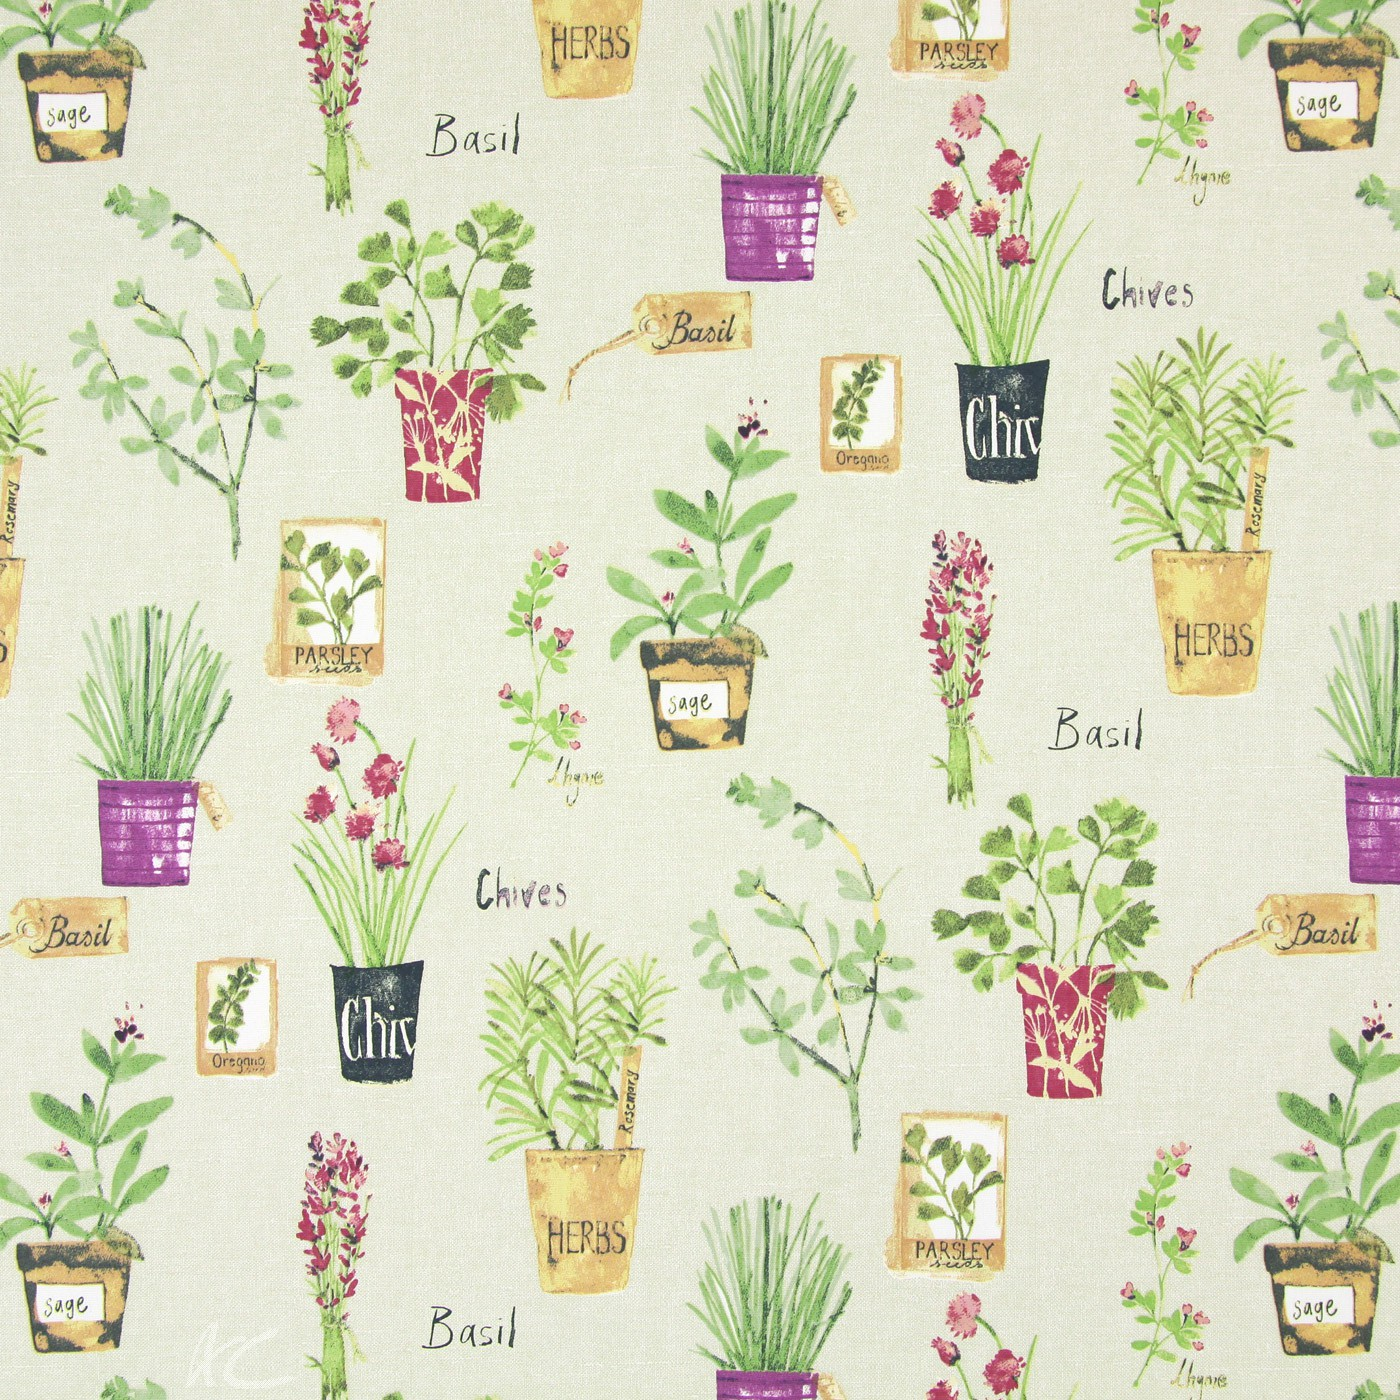 Country Fair Herb Pots Linen Cushion Covers